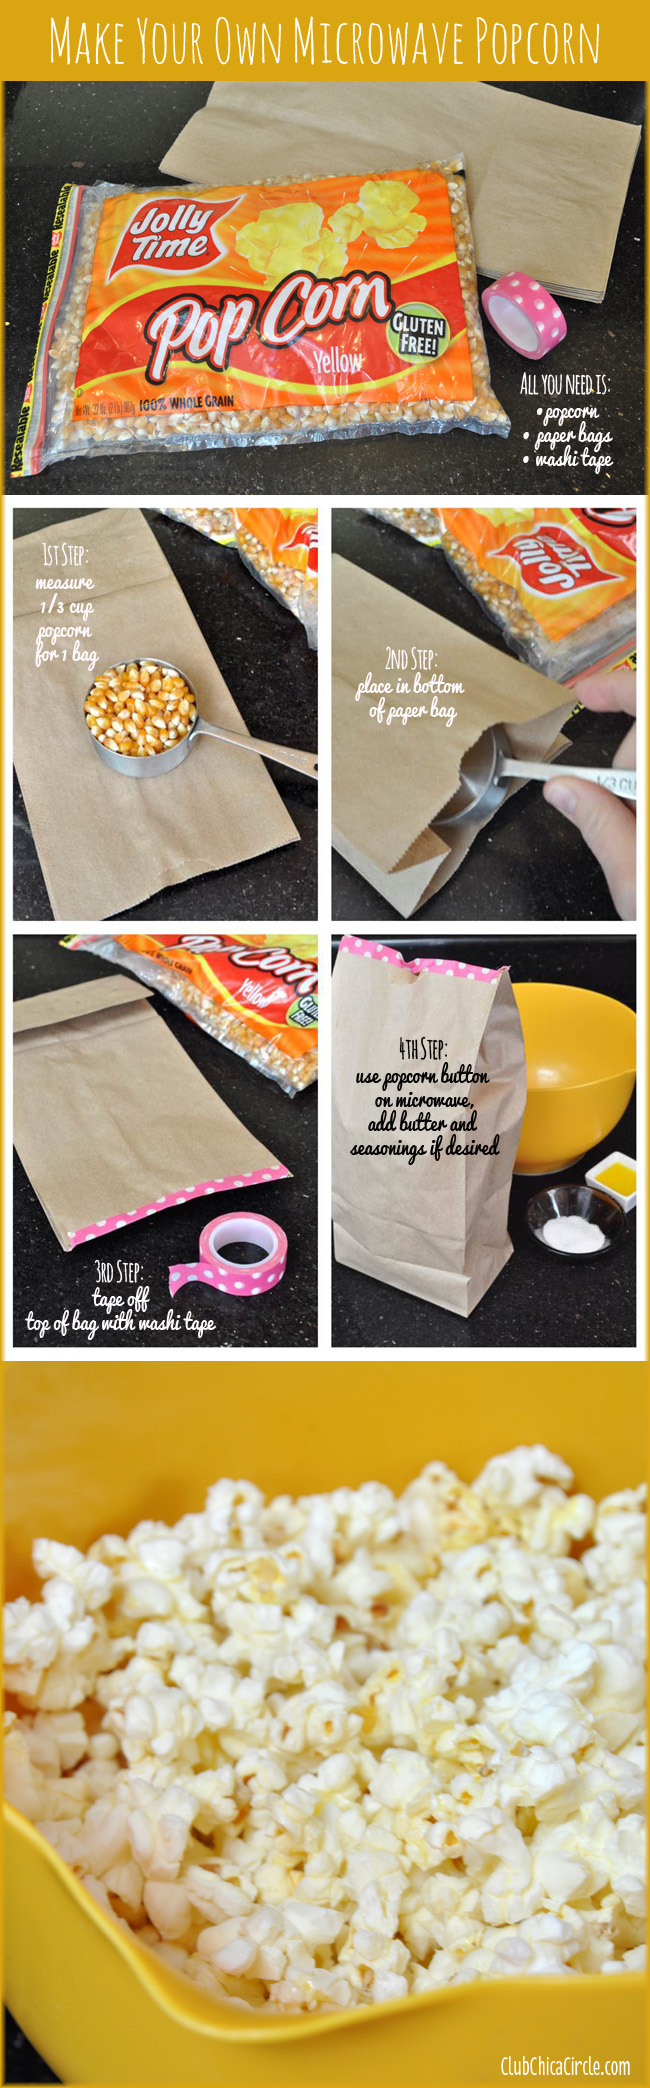 how to make your own microwave popcorn bags